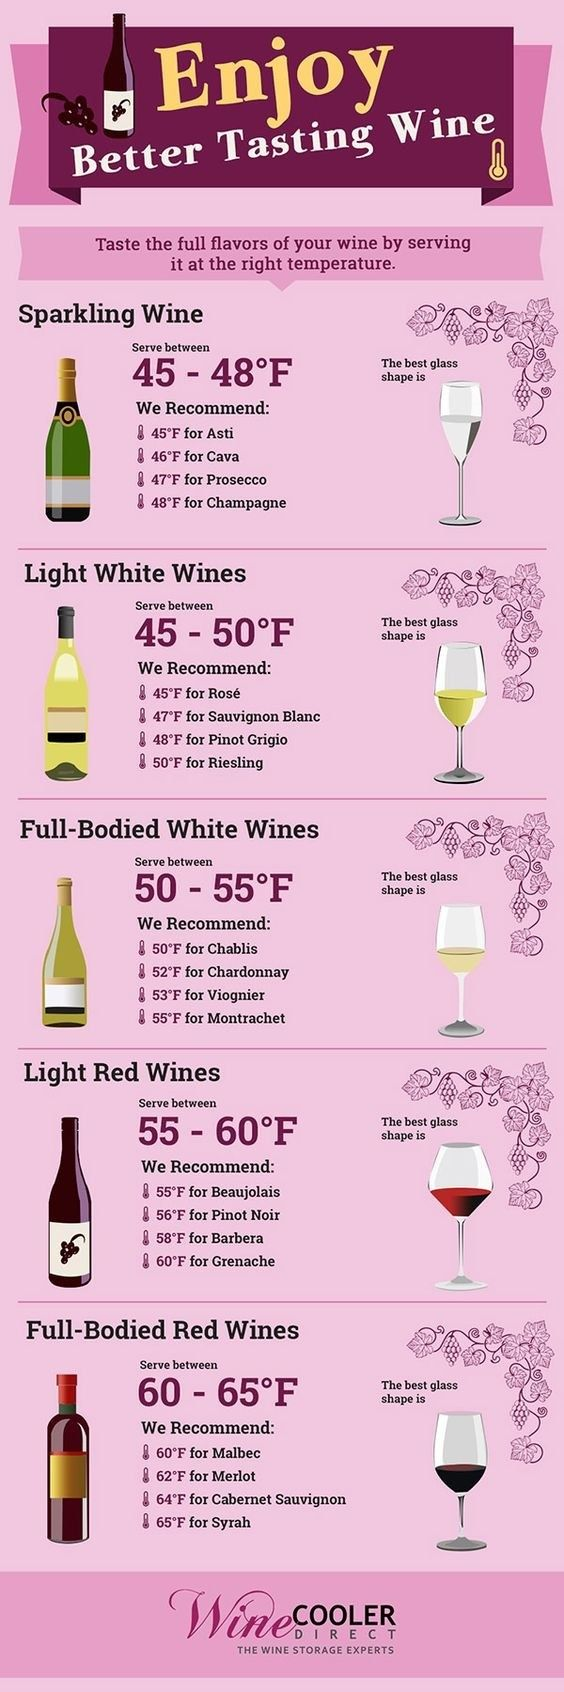 22 best wine travel images on pinterest architecture cities and 16 cheat sheets for anyone who loves drinking wine gamestrikefo Image collections